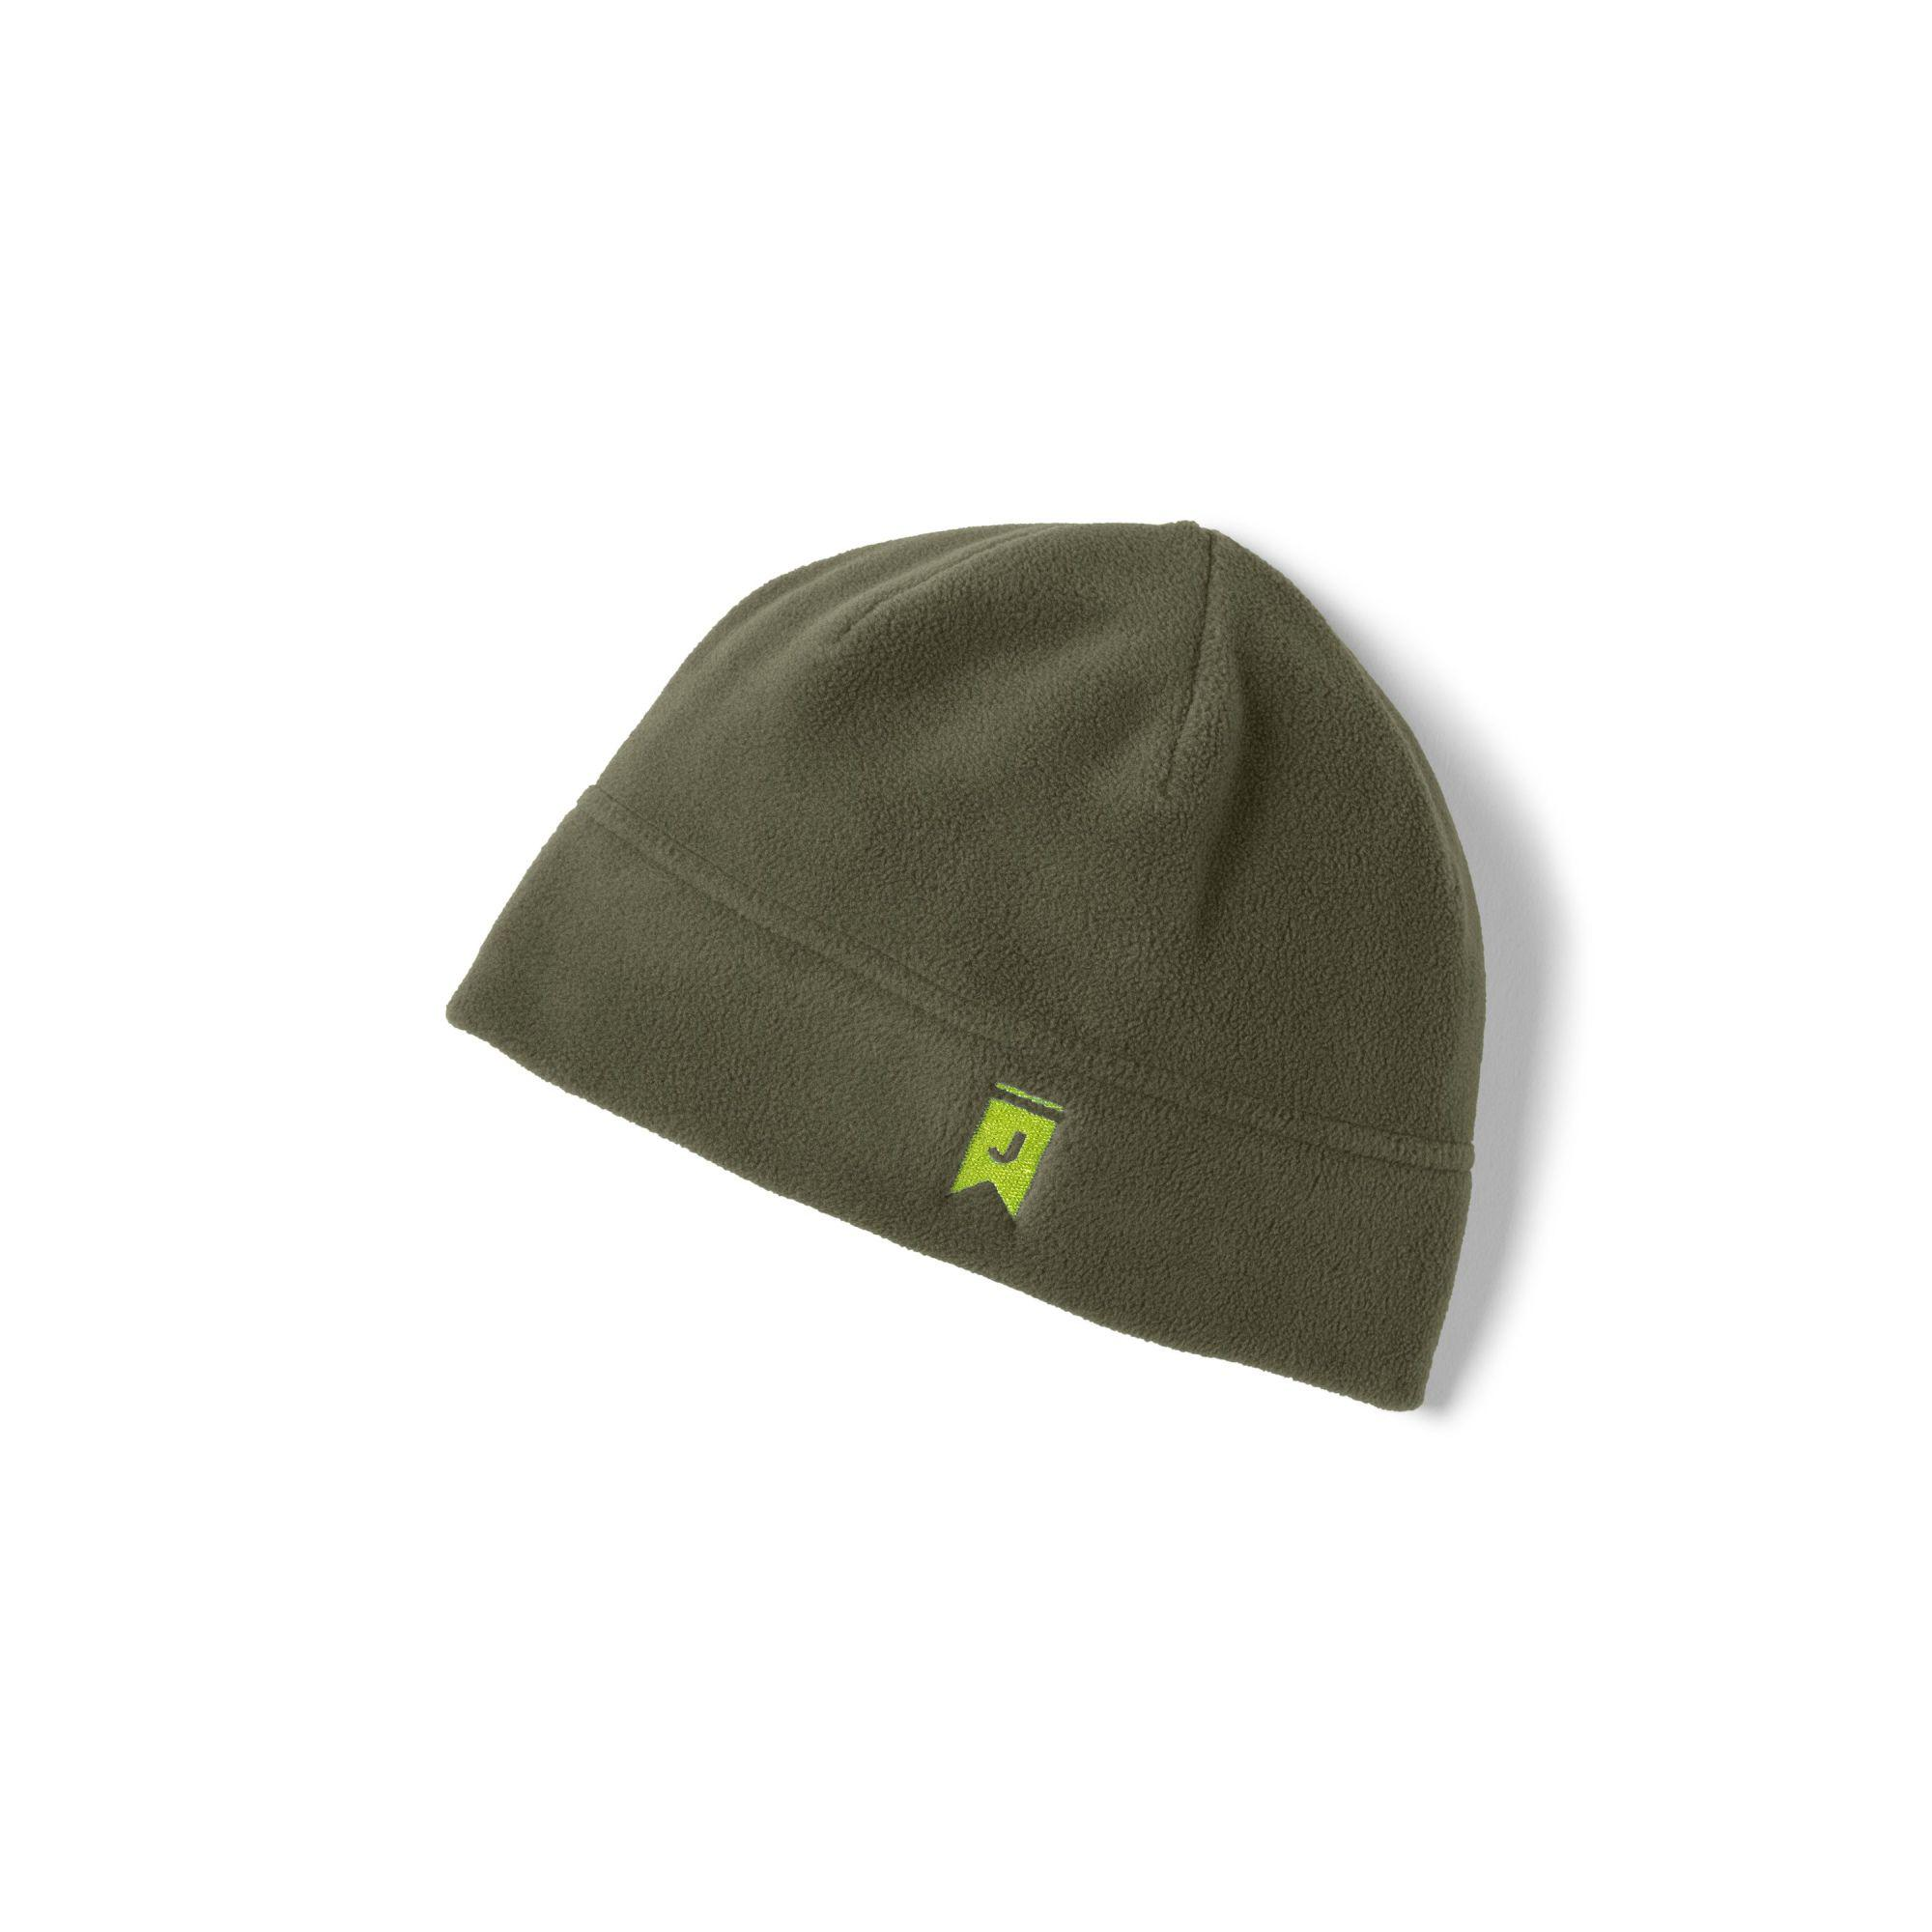 0f7b8f770 Lands' End Green Theremacheck 200 Fleece Beanie Hat in Green for Men ...